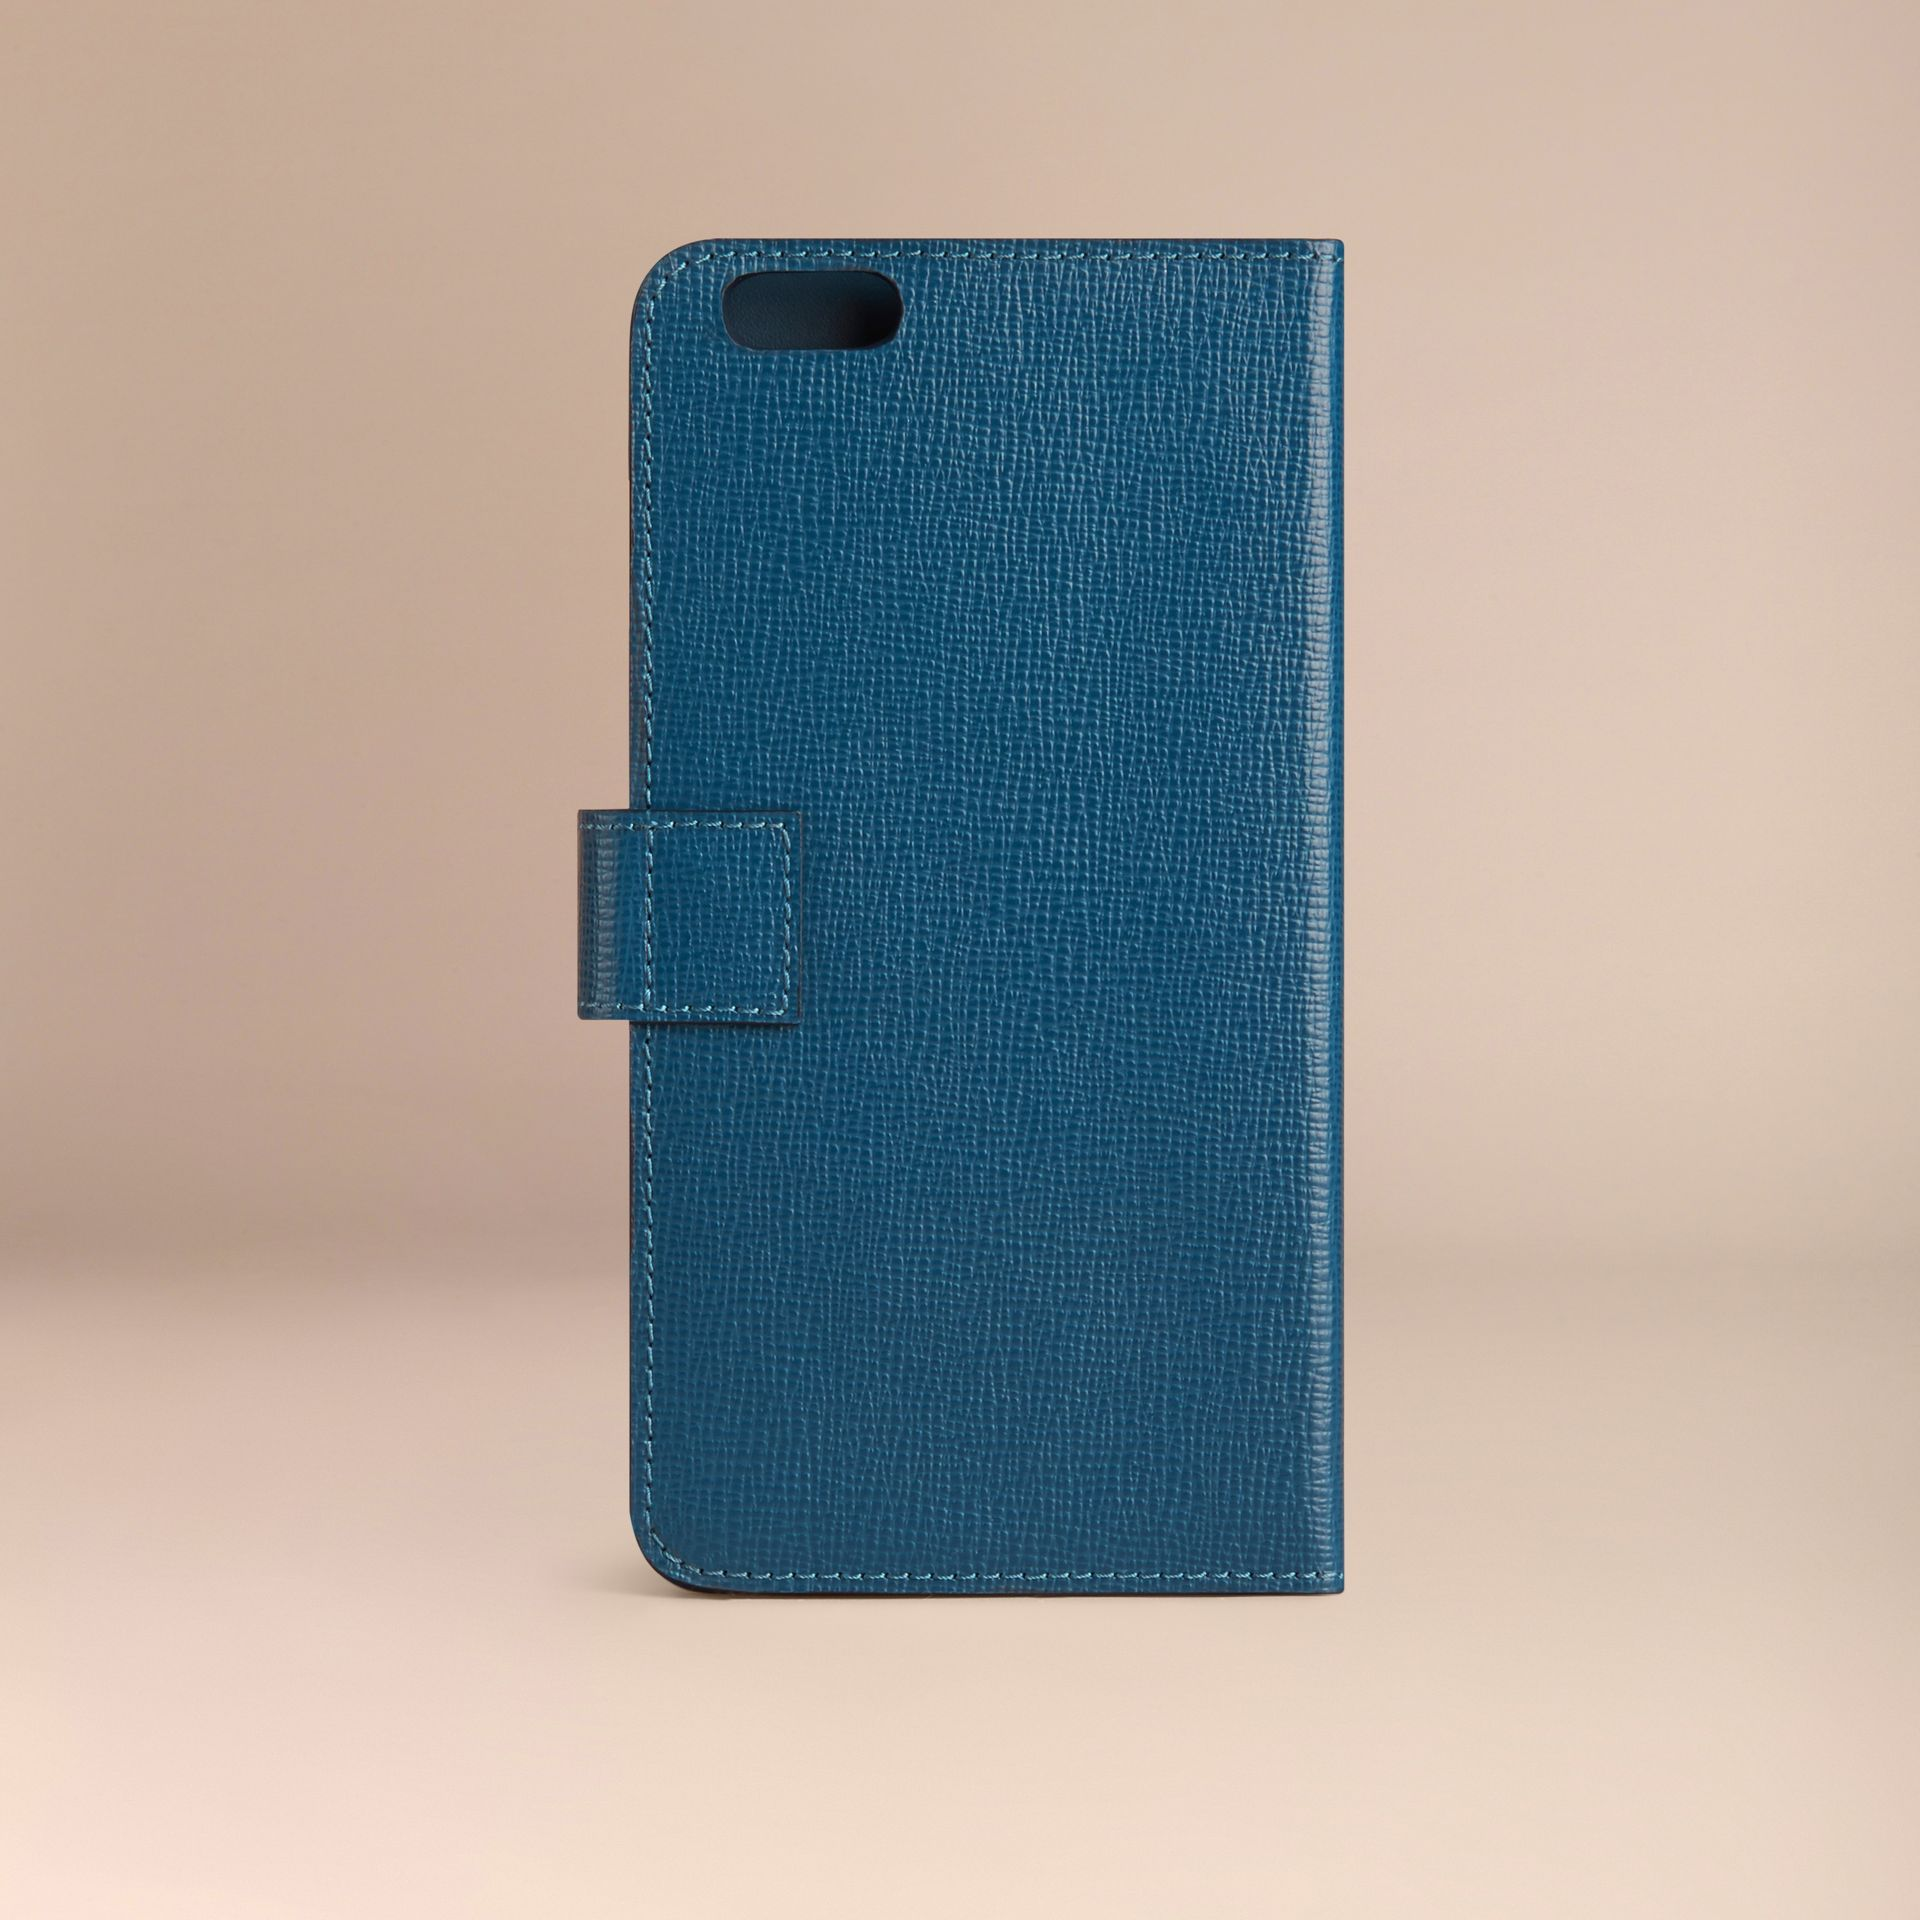 Blu minerale Custodia a libro in pelle London per iPhone 6 Plus Blu Minerale - immagine della galleria 3